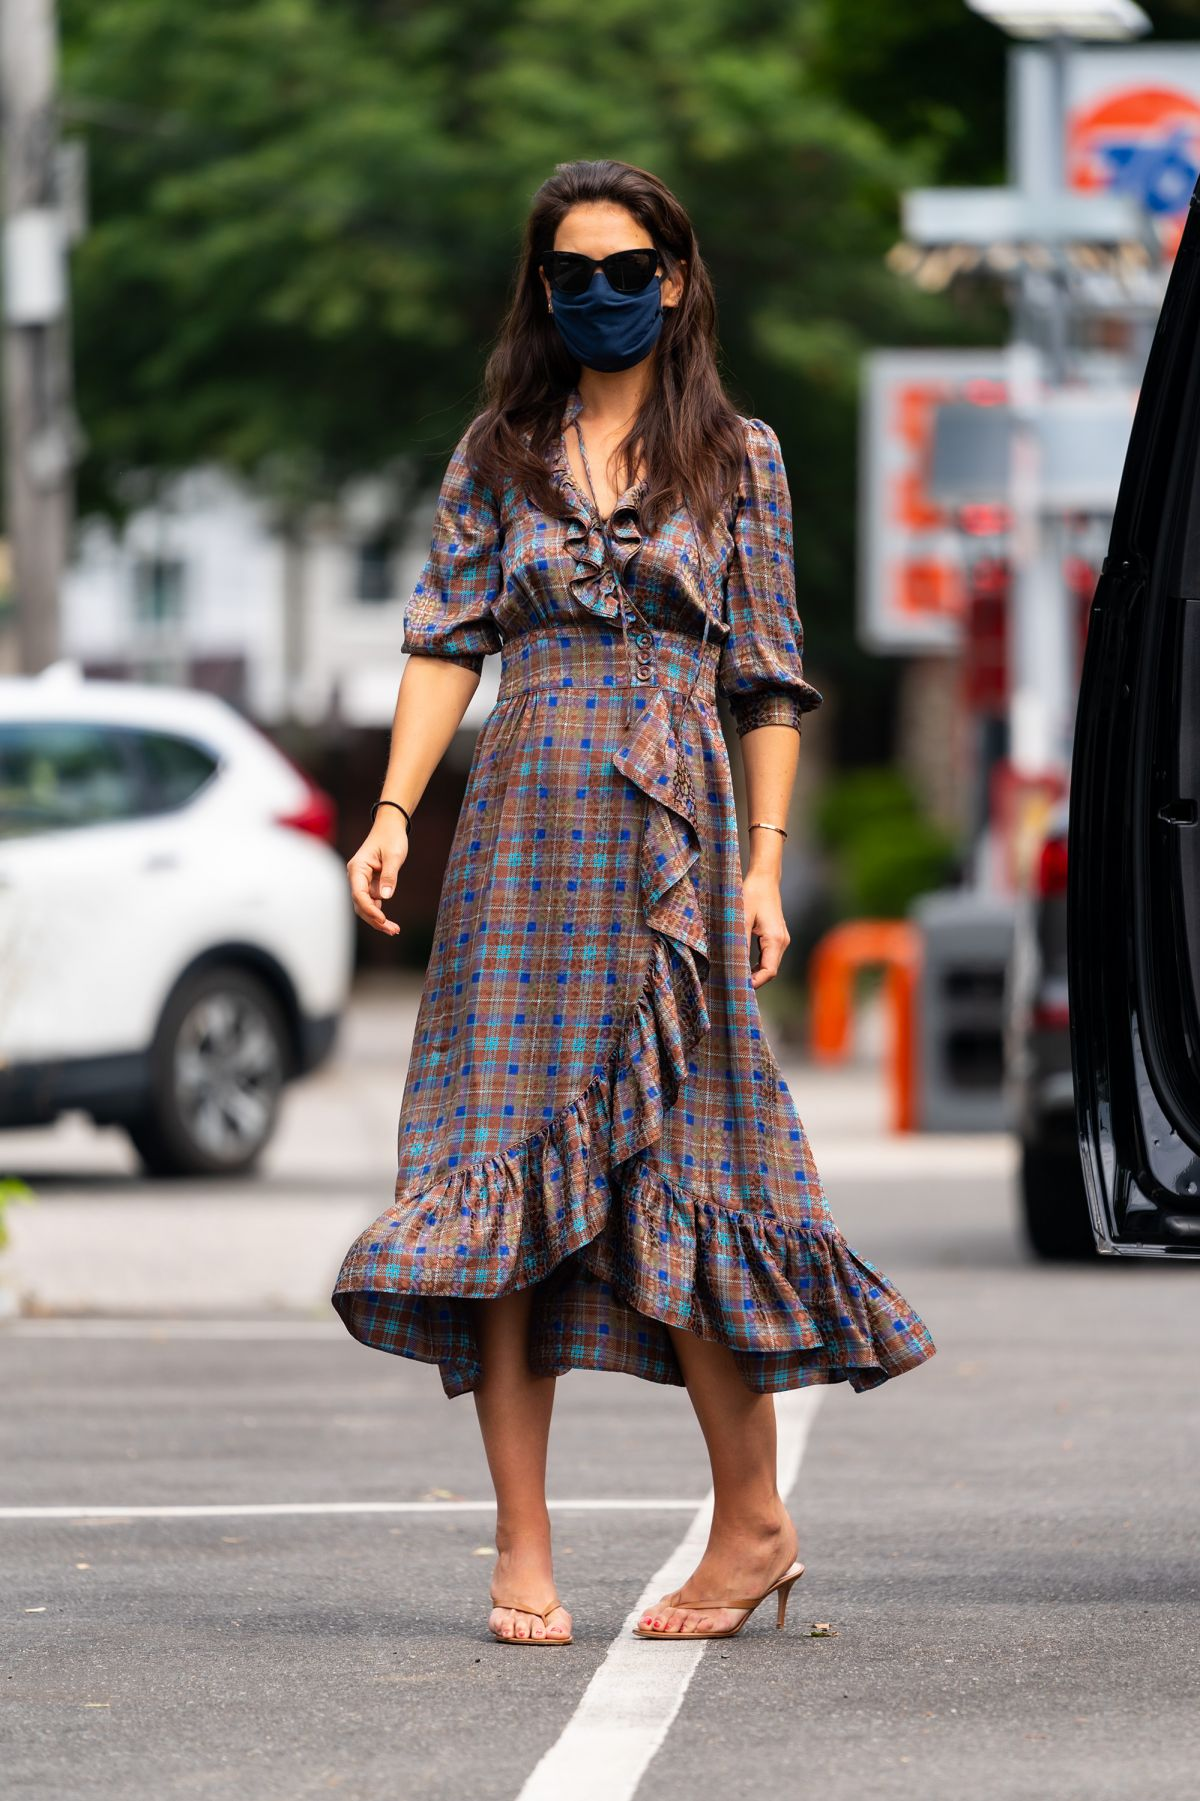 katie-holmes-in-printed-dress-out-in-new-york-city-august-23-2020